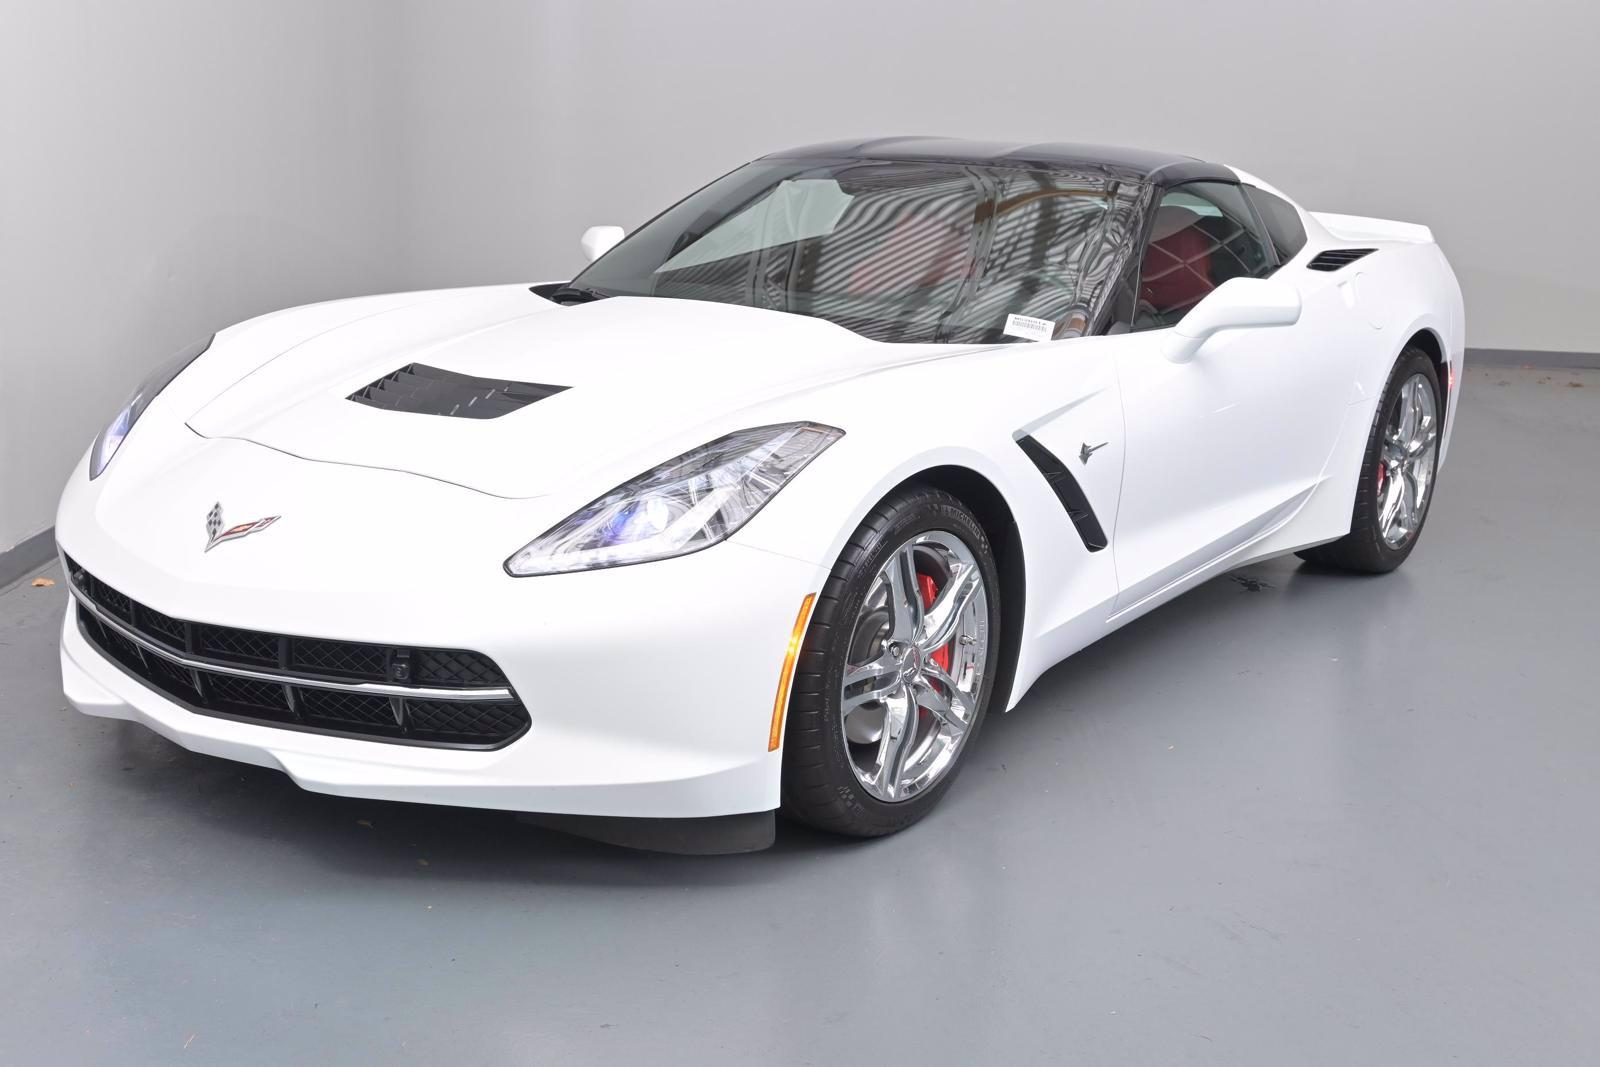 2016 Chevrolet Corvette Vehicle Photo in Cary, NC 27511